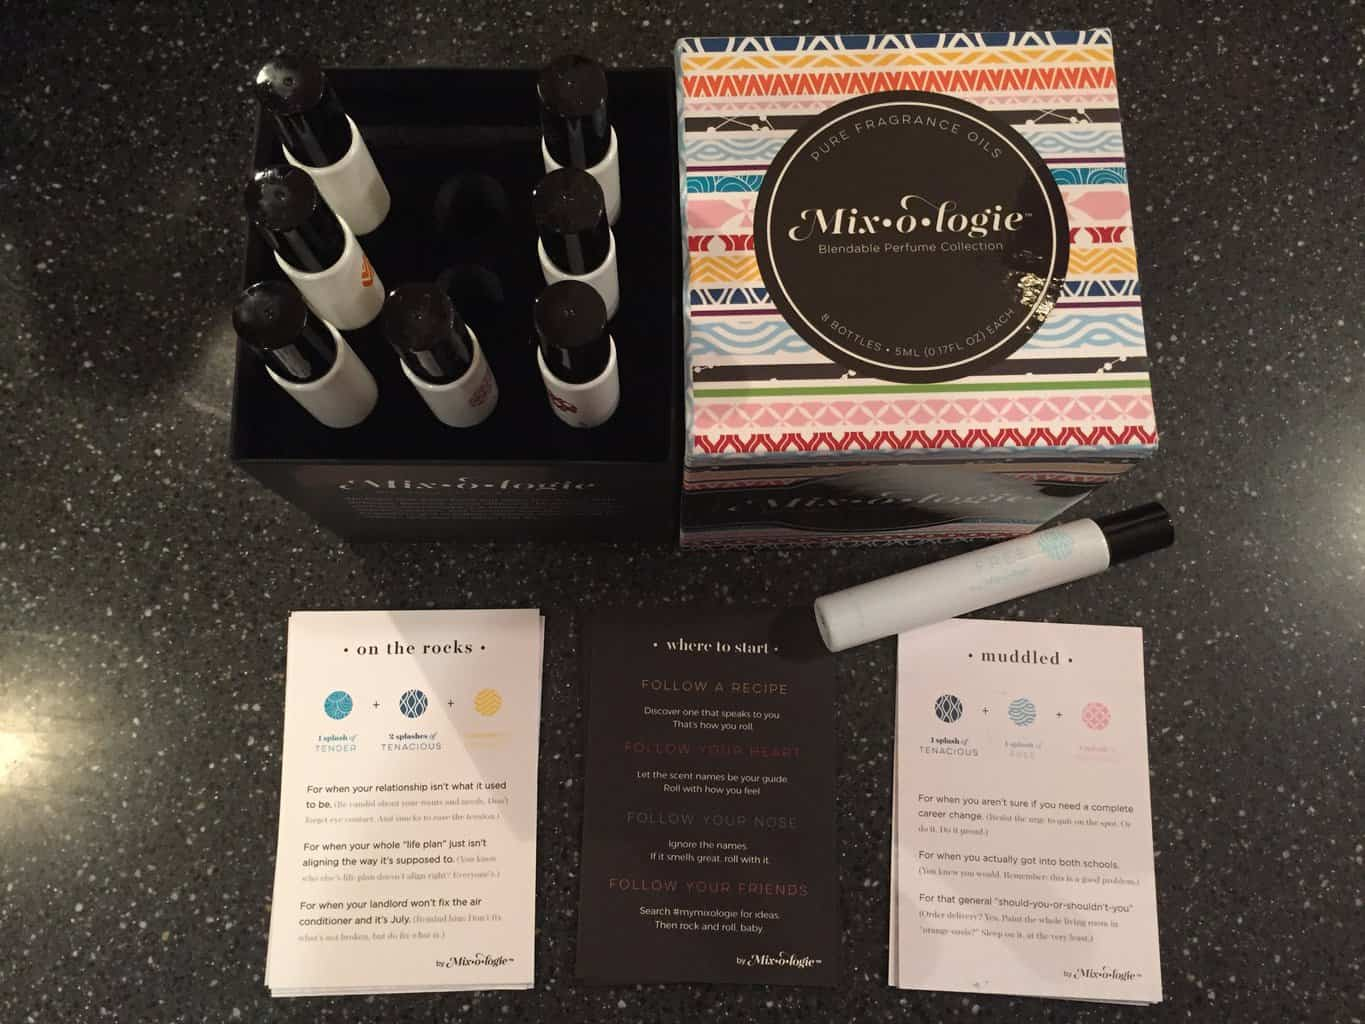 Mixologie Custom Blendable Fragrance Set, crafted in Austin, TX